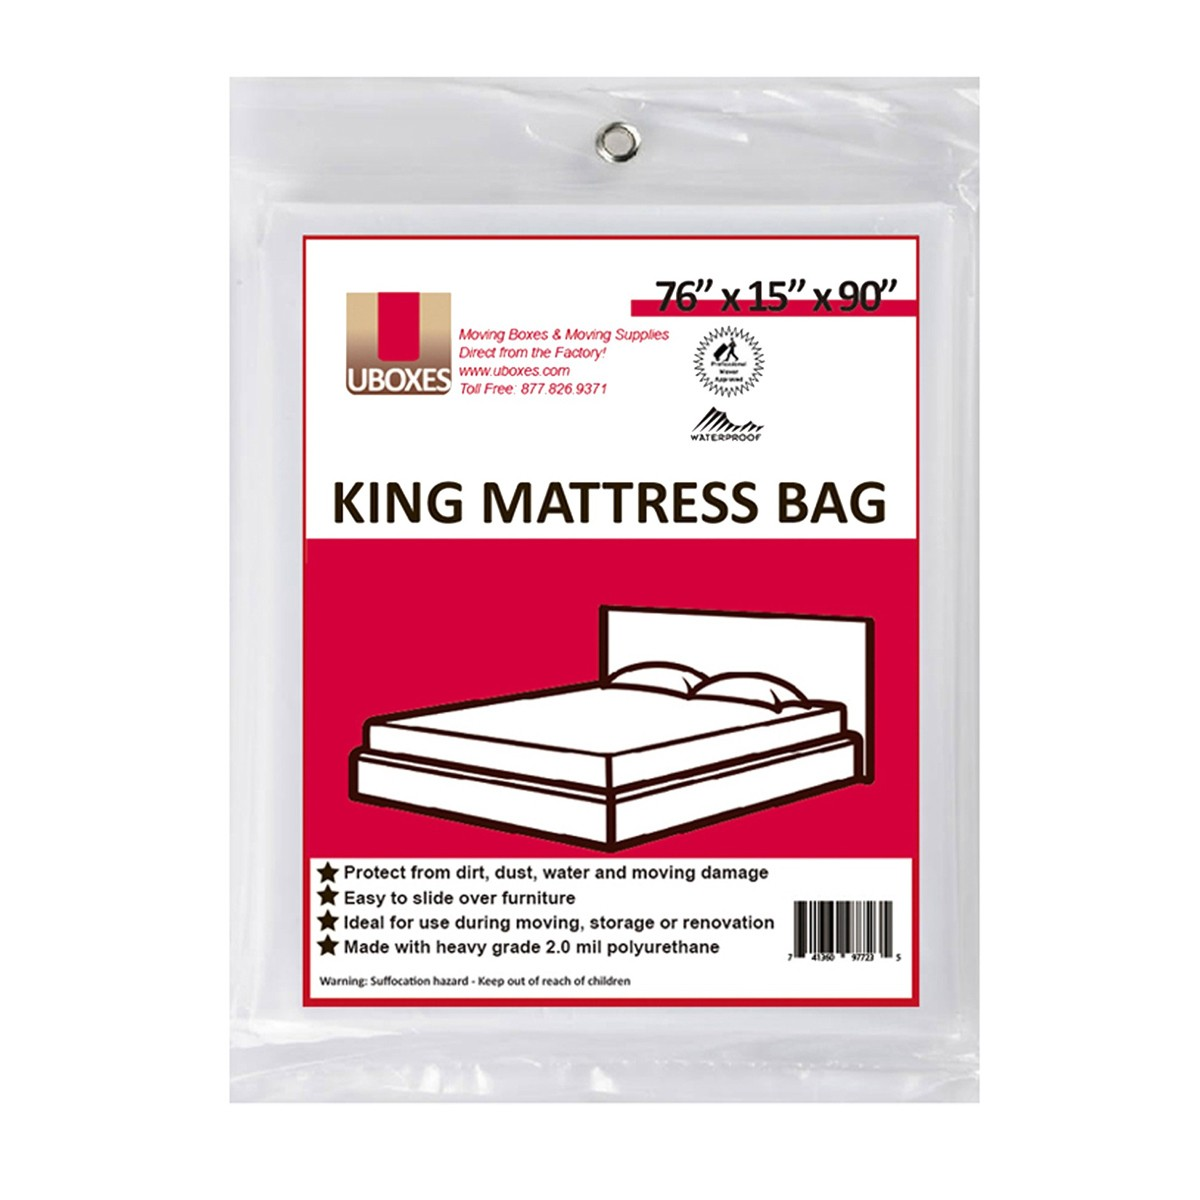 "10 King Mattress Covers 76x15x90"" Poly Bags Protective Moving Storage by Uboxes"